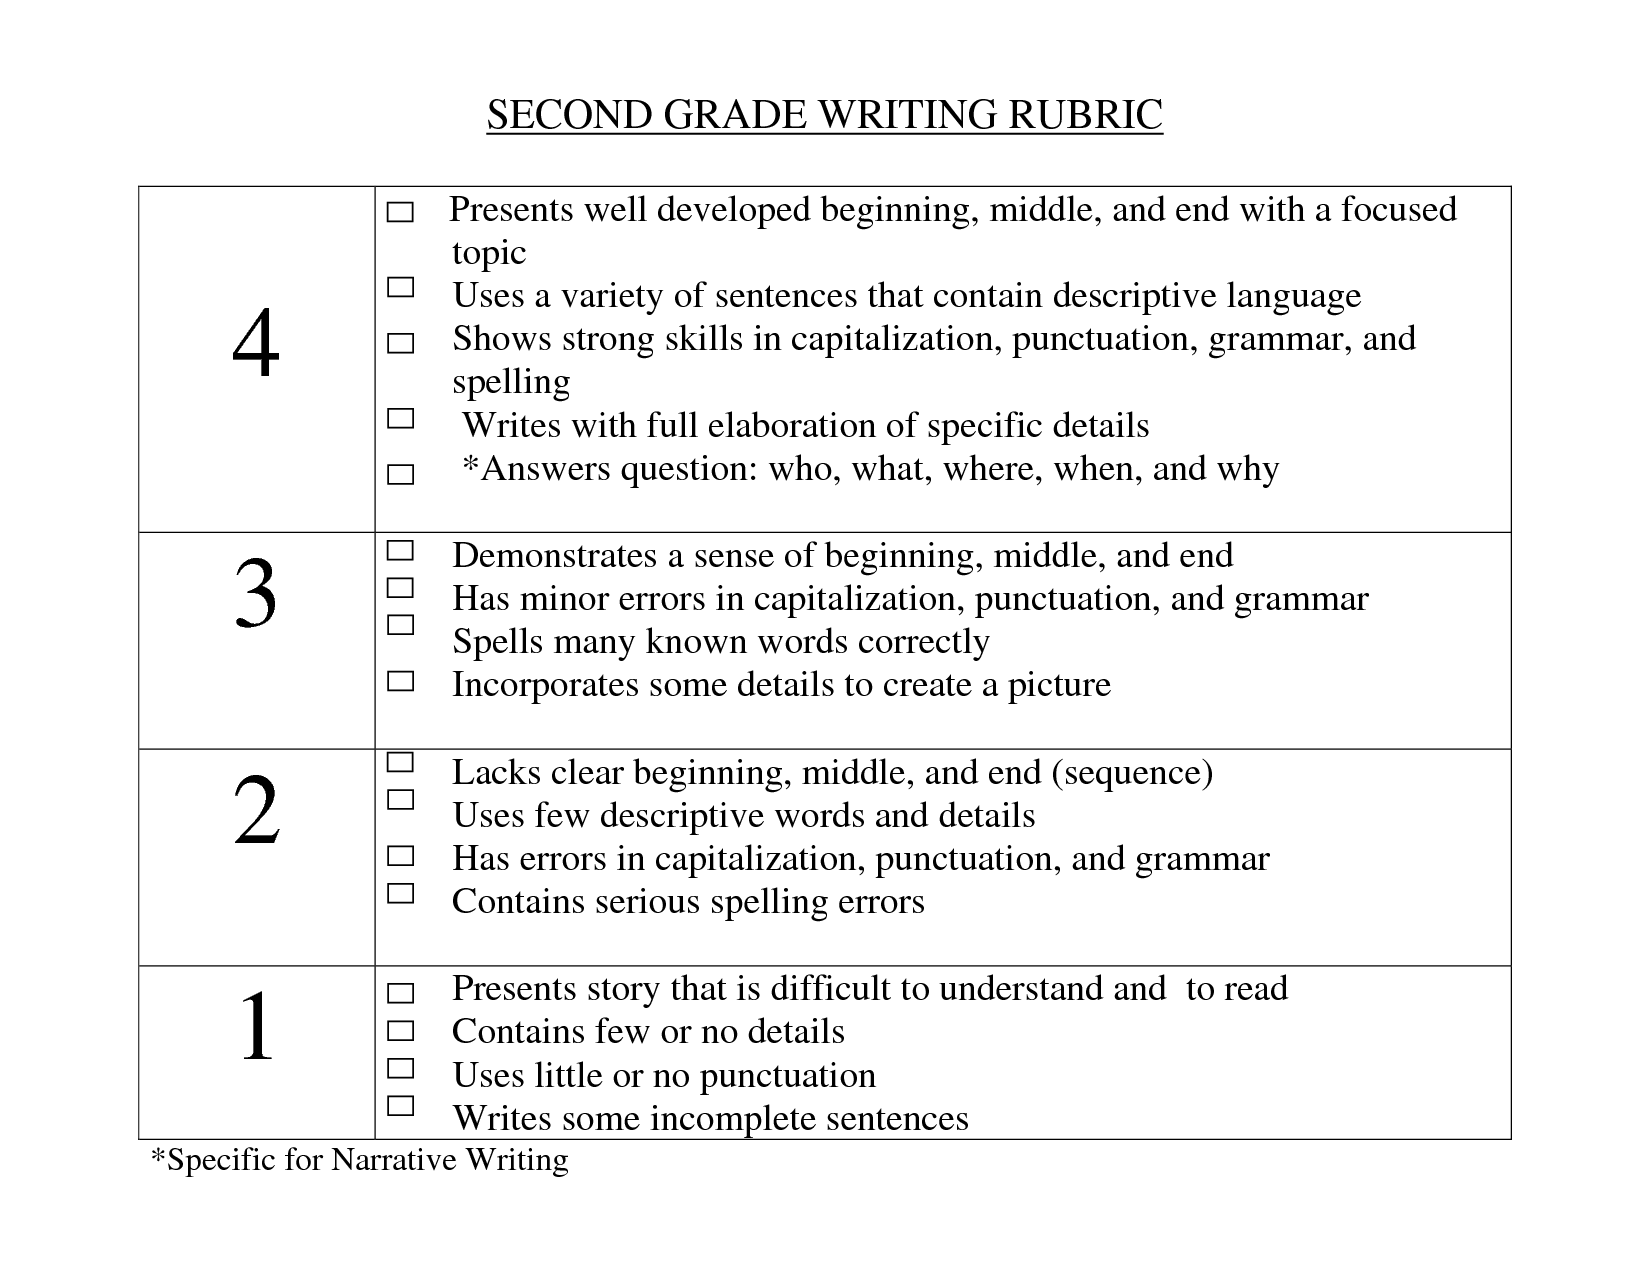 opinion essay rubric 3rd grade Here you will find a simple essay rubric for elementary grade students, along with a few examples and tips on how to use them an essay rubric is a way teachers assess students' essay writing by using specific criteria to grade assignments.